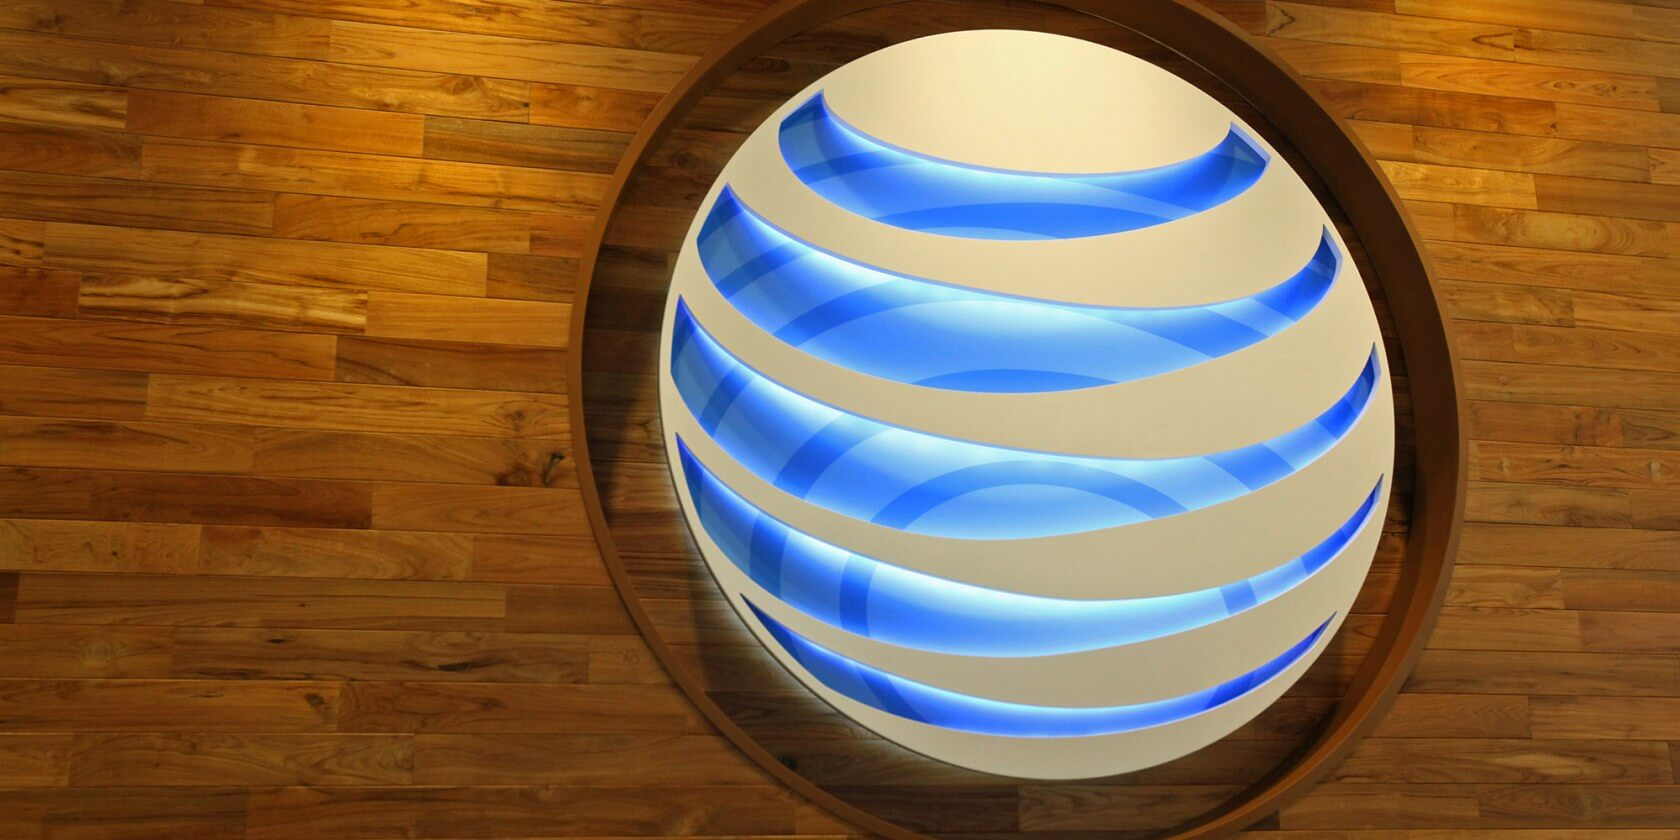 AT&T, T-Mobile Will Stop Giving Your Location Data to Third Parties